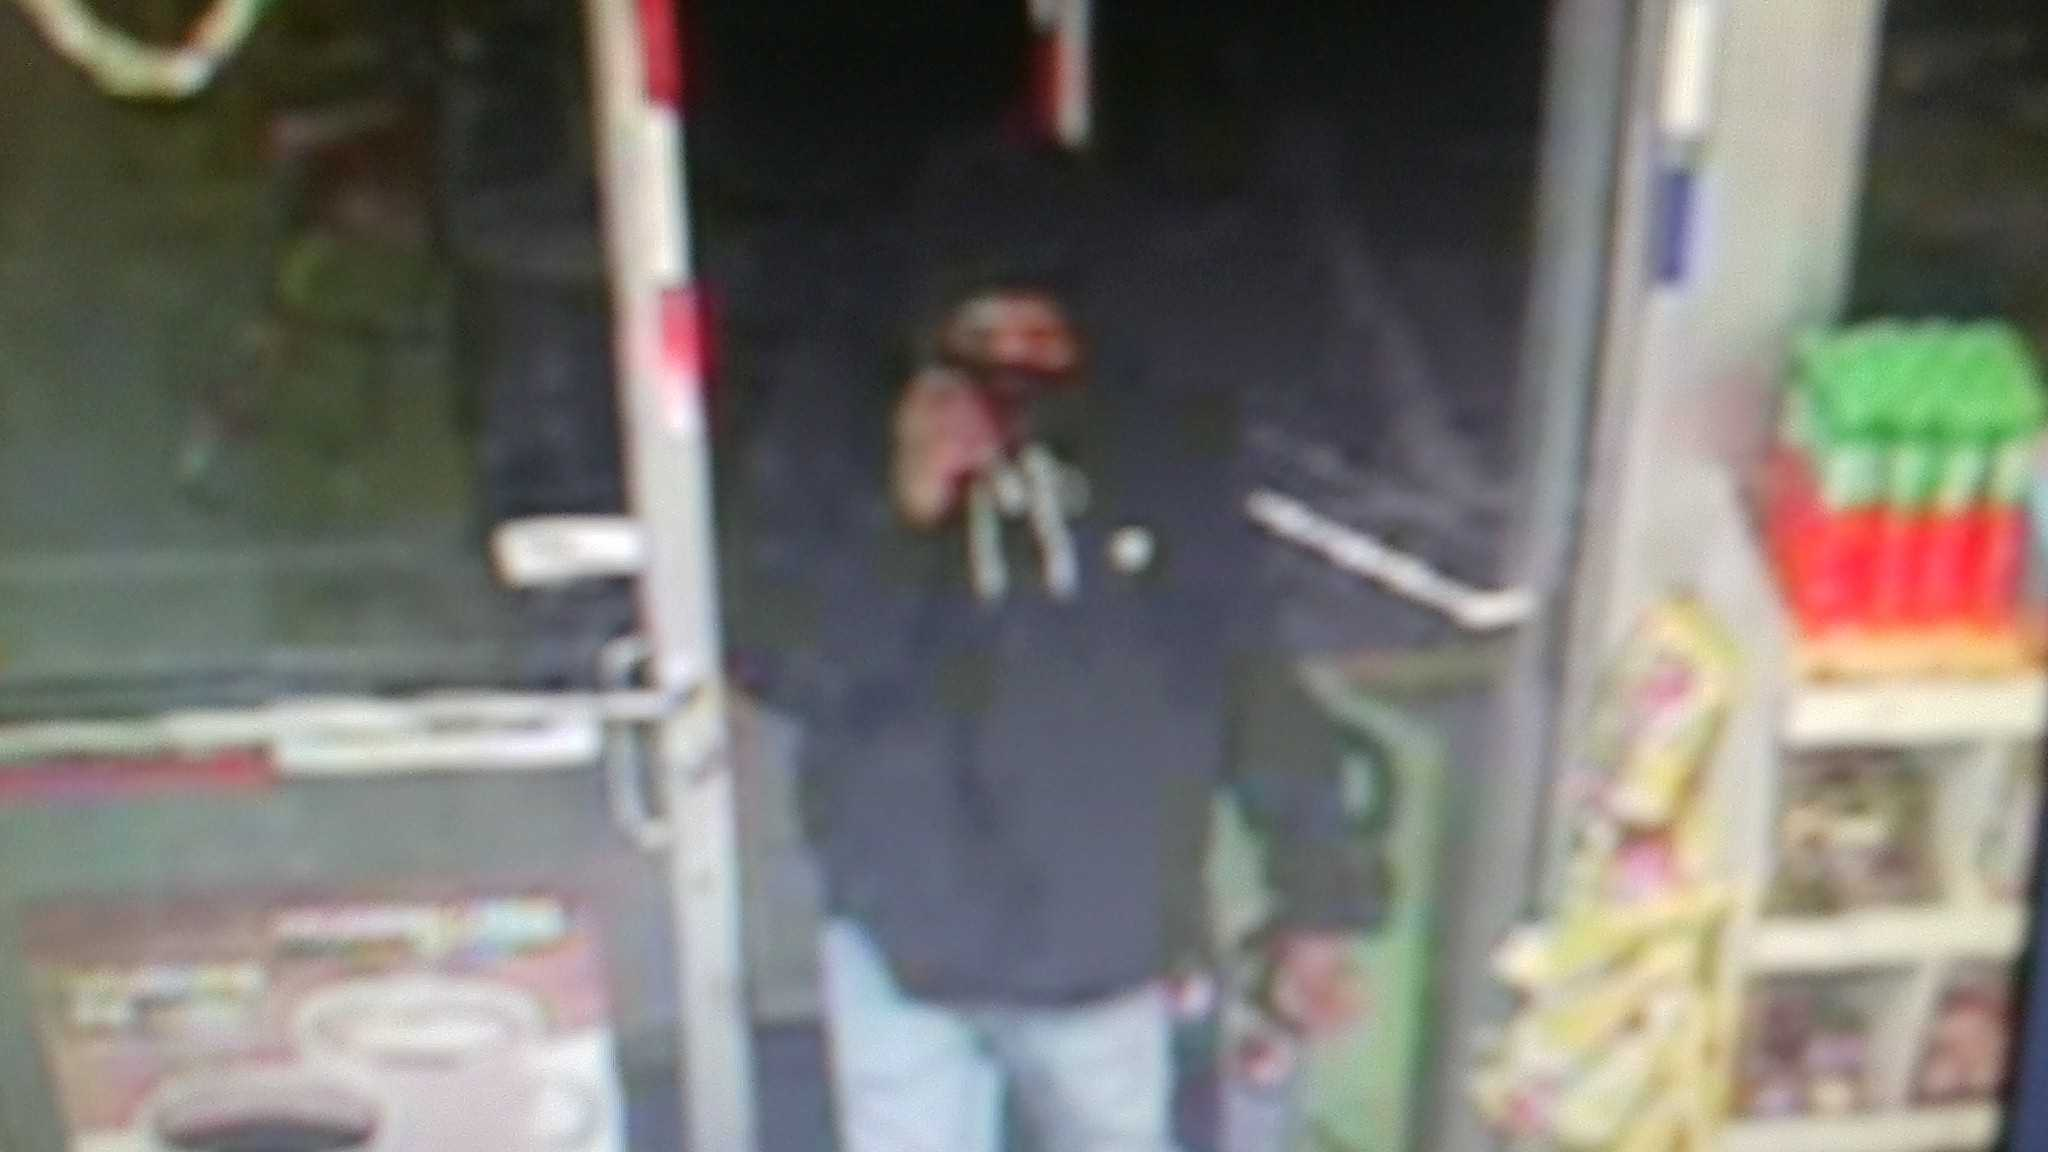 3.17.14 turkey hill suspect.jpg